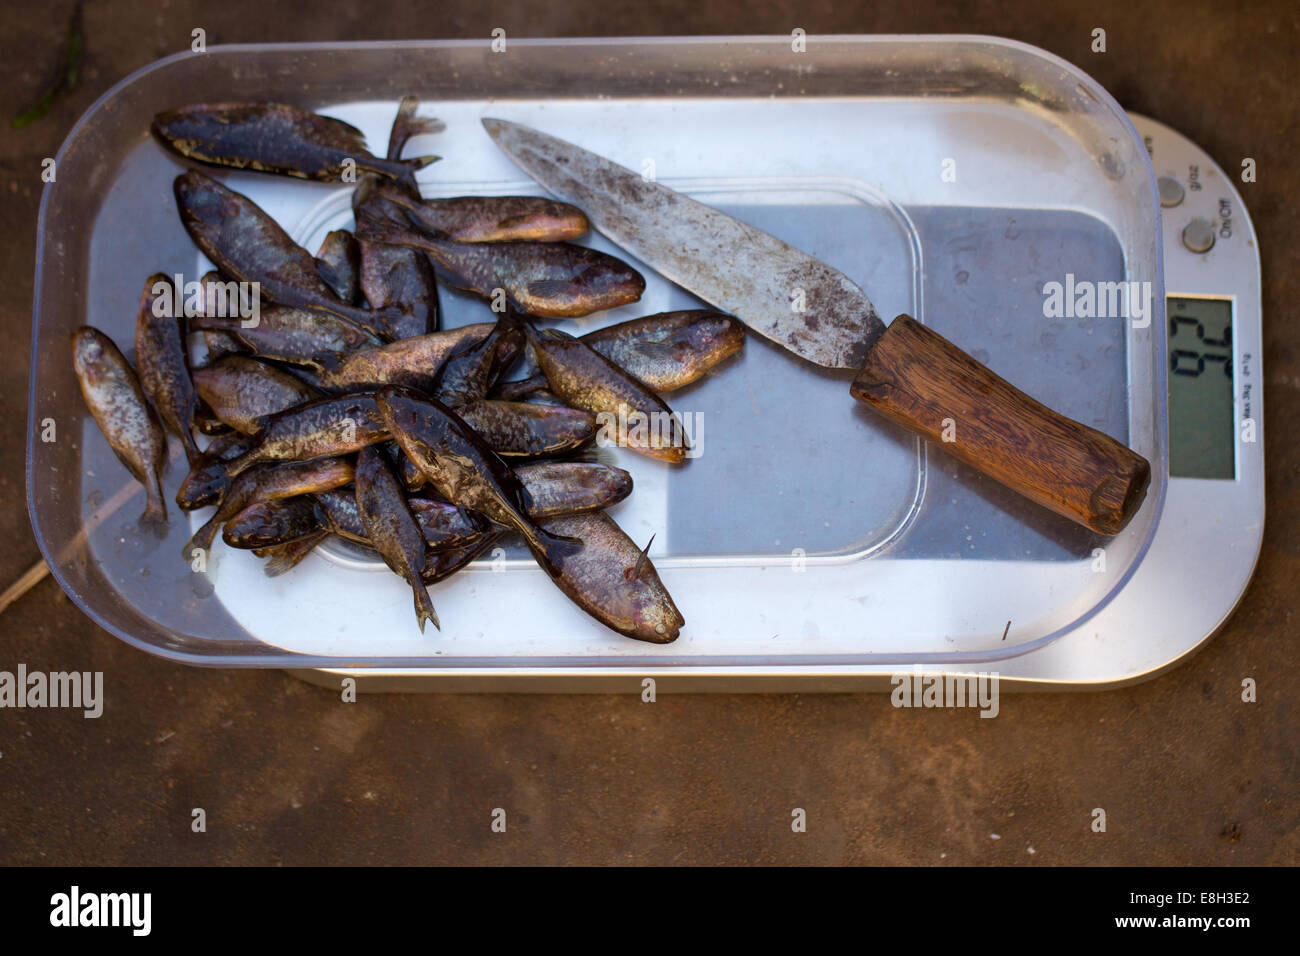 fish are weighed as part of a scientific assessment of sustainable fishing in Bangweulu Zambia. - Stock Image